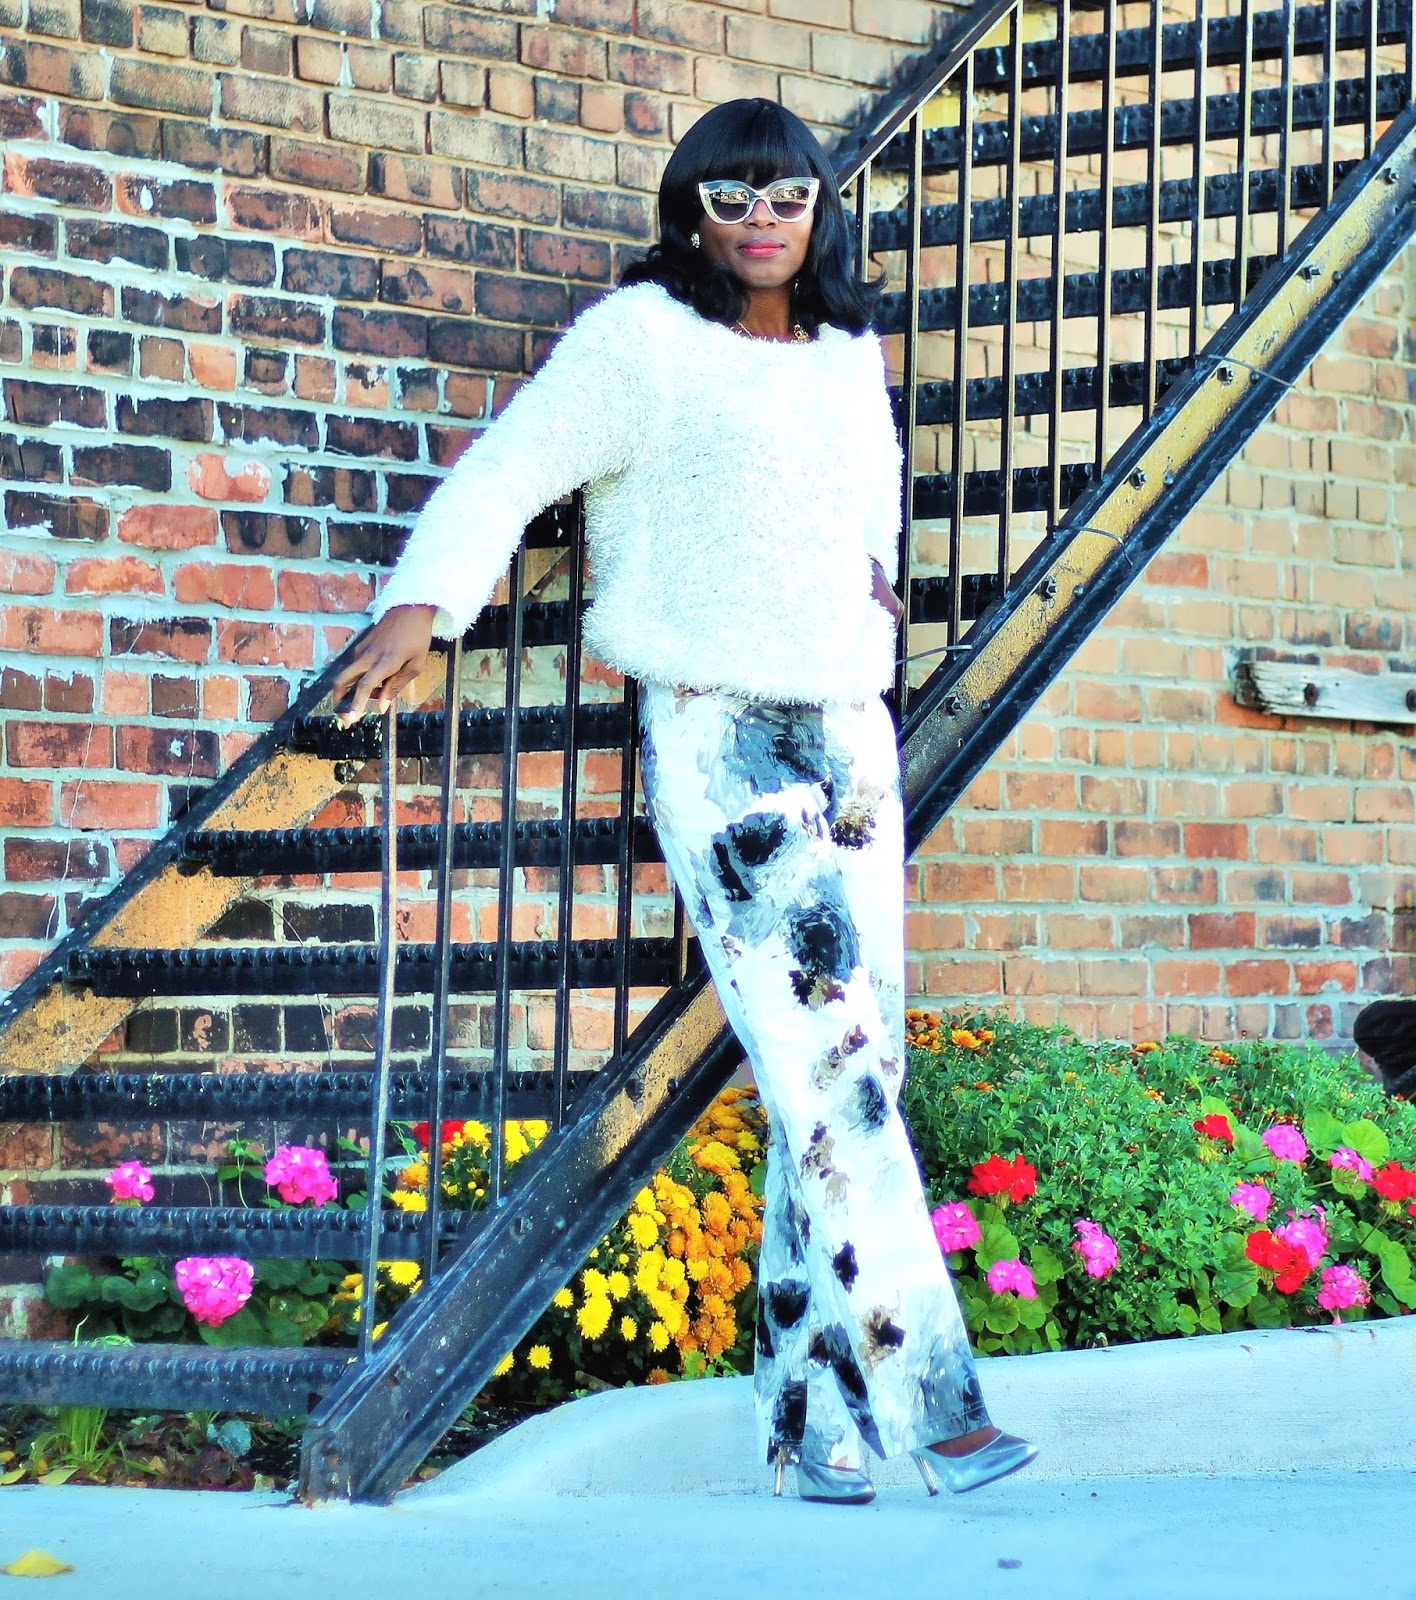 FALL FRIDAY CASUAL FROM DAY TO NIGHT: OVERSIZED SWEATER AND PANTS